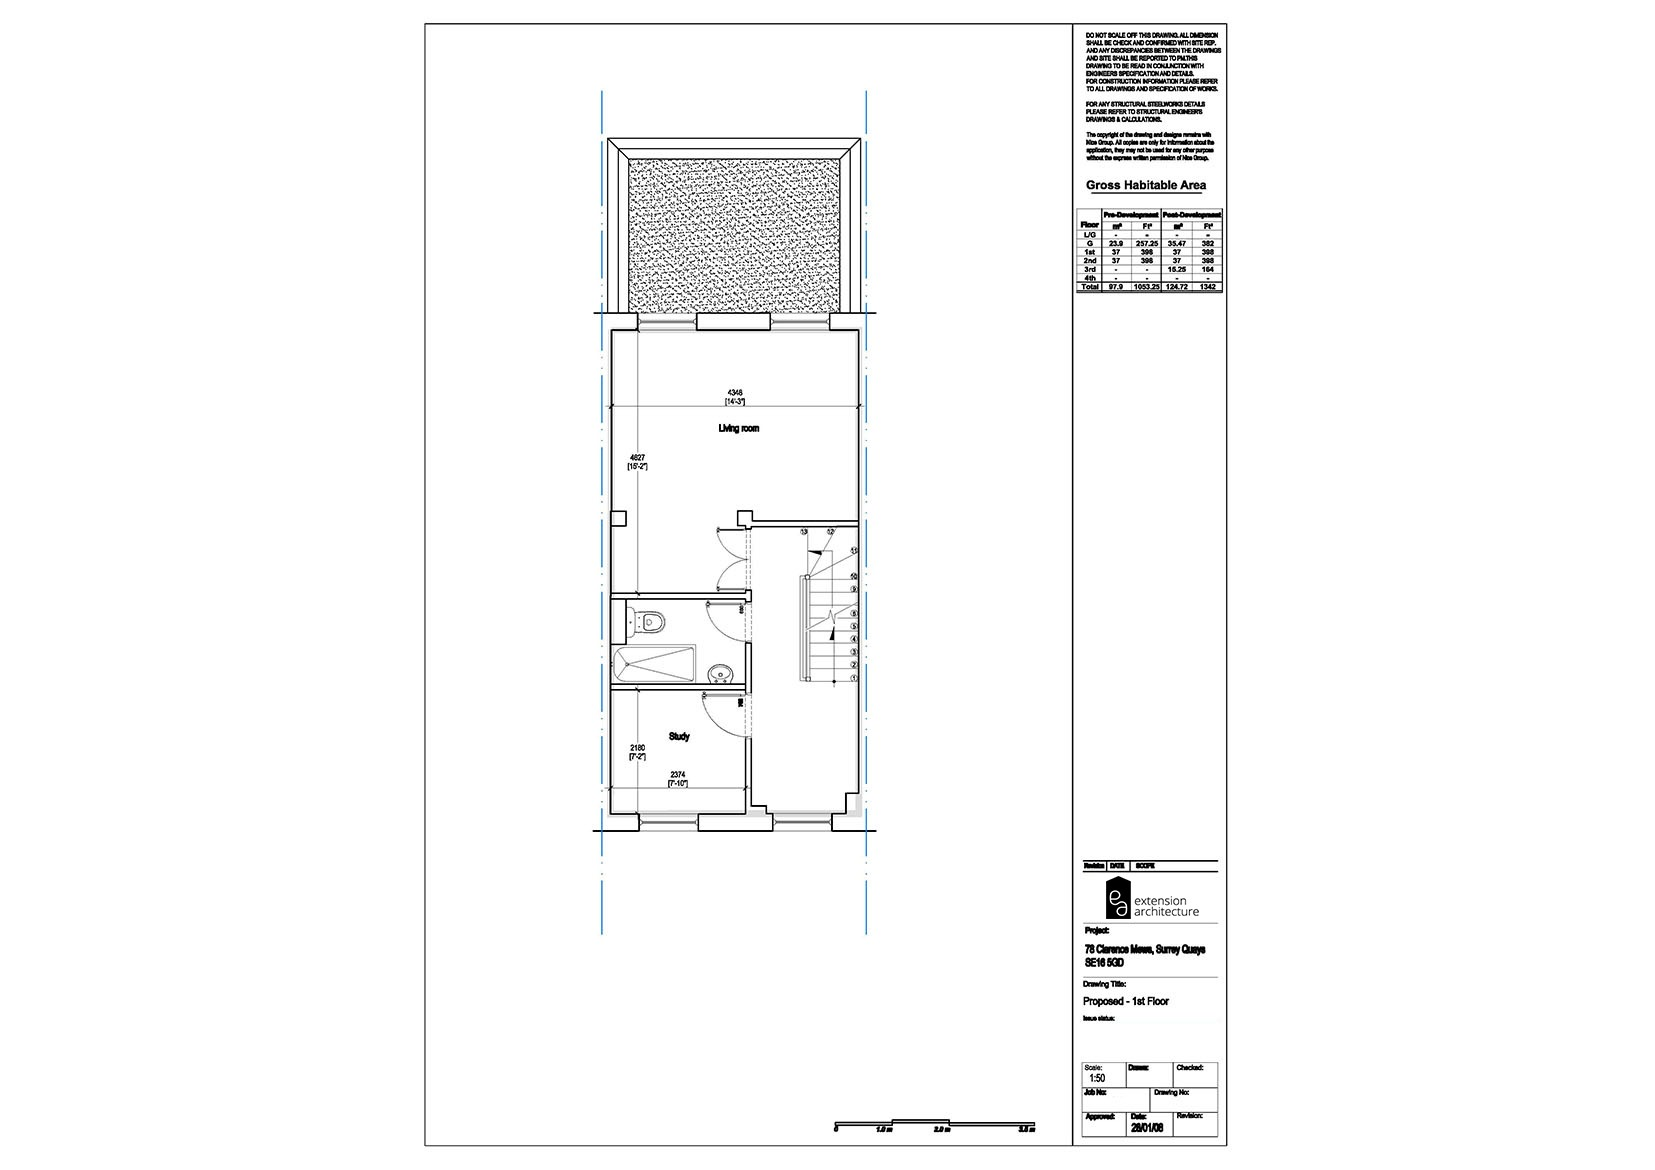 RESIDENTIAL 78CM proposed-single storey rear extension…page 02